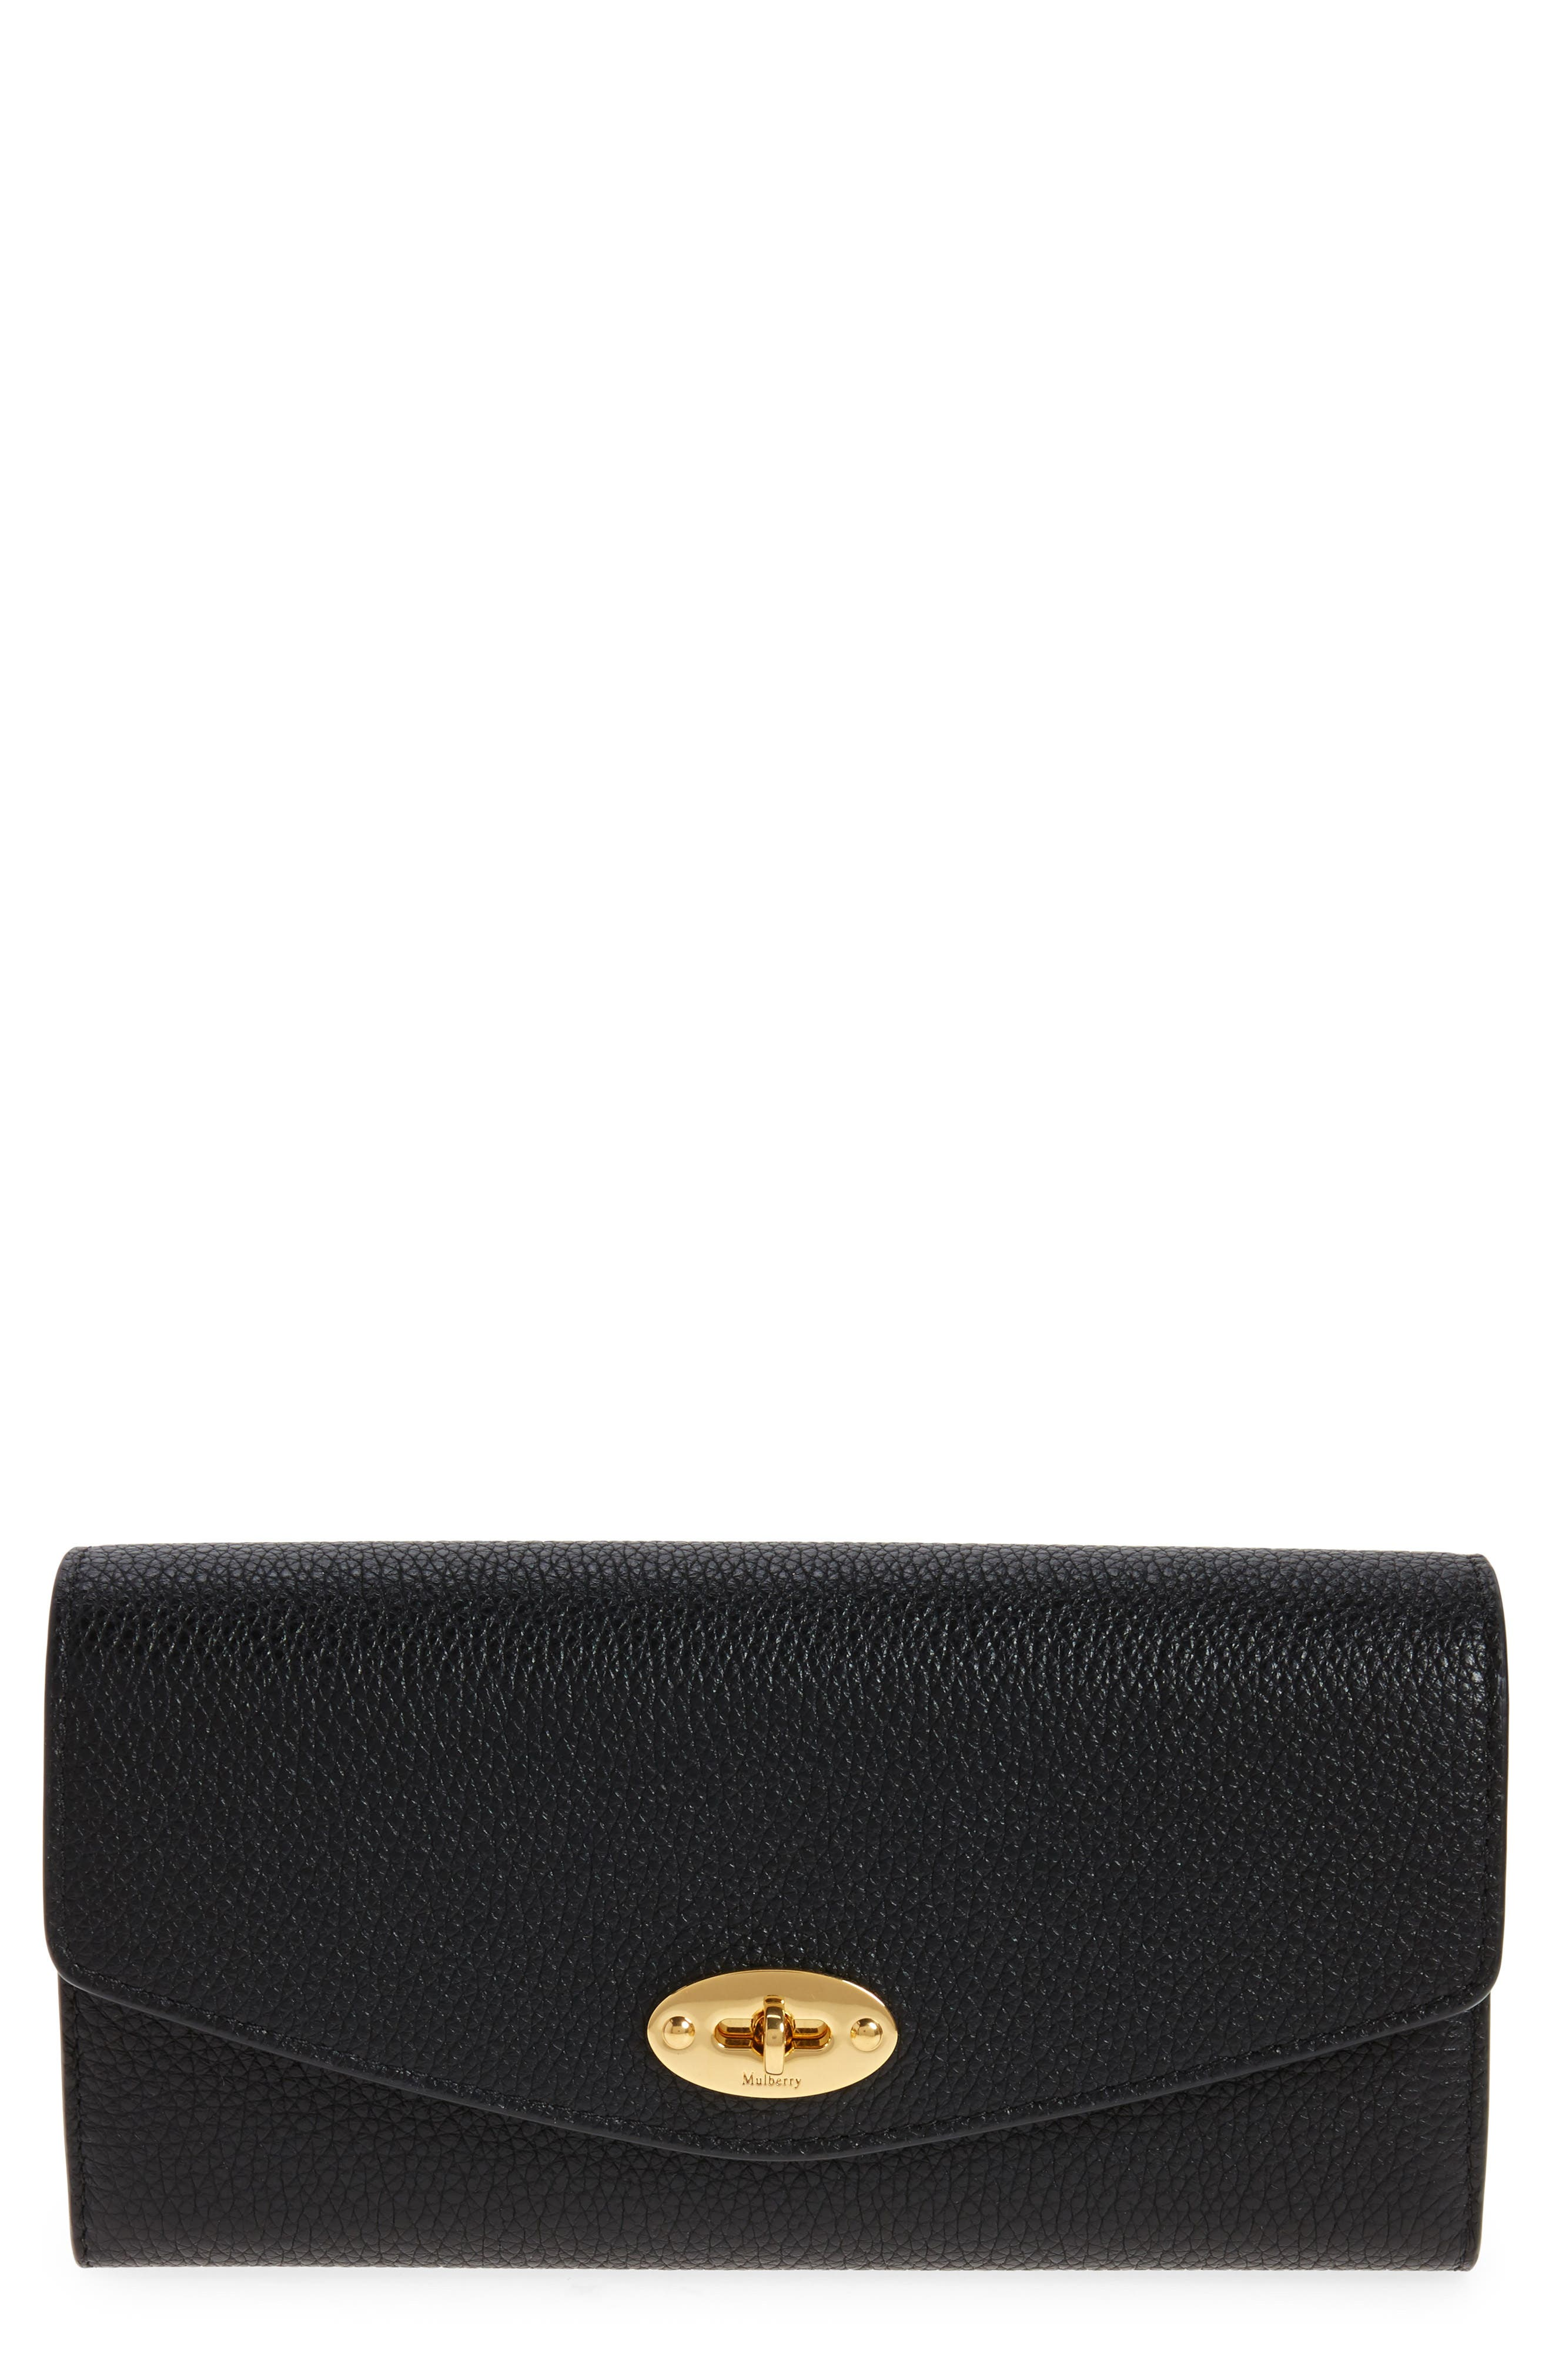 Main Image - Mulberry Darley Continental Leather Wallet